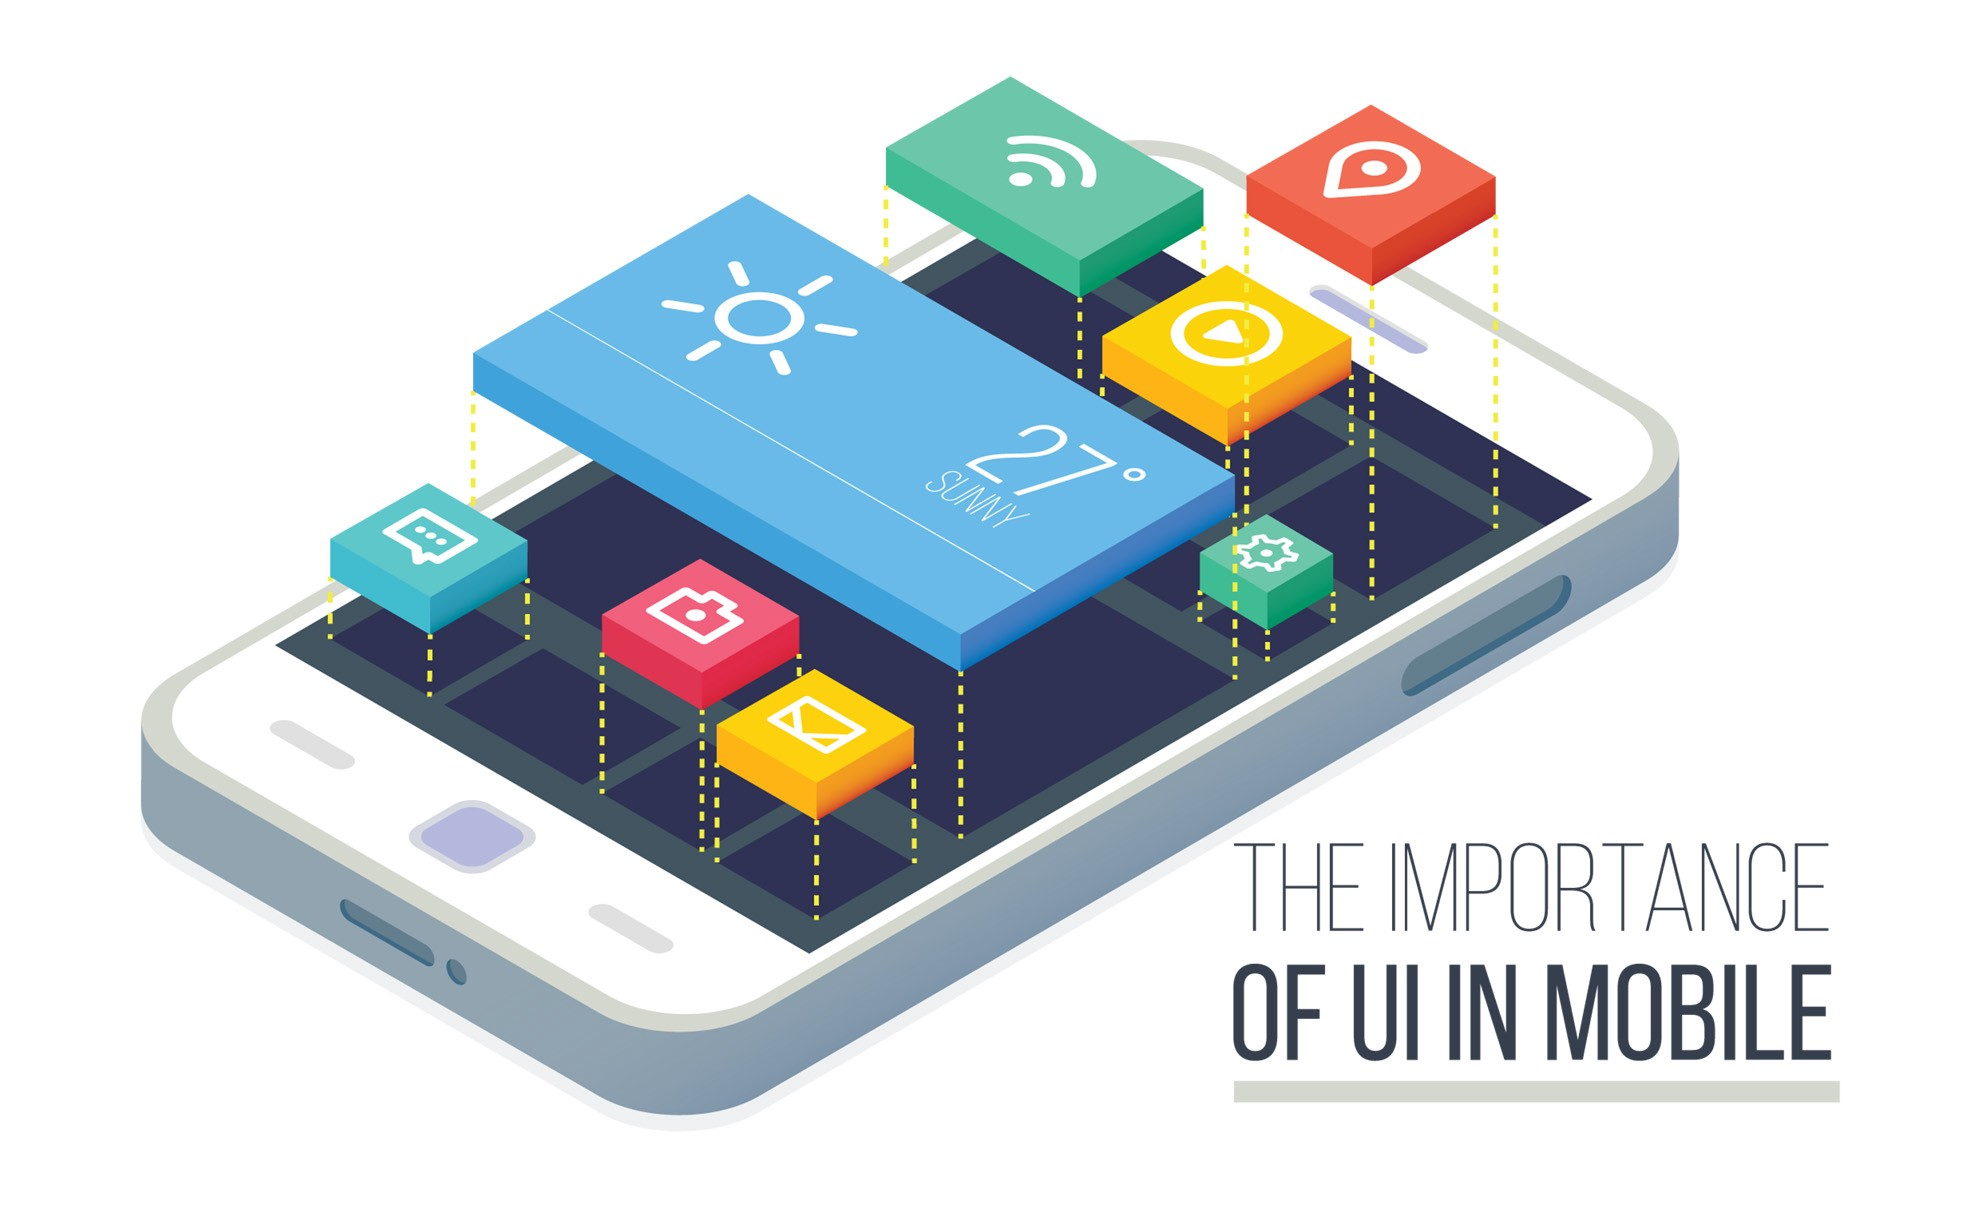 5 reasons why UI is important - Omnibridge Systems Pvt  Ltd